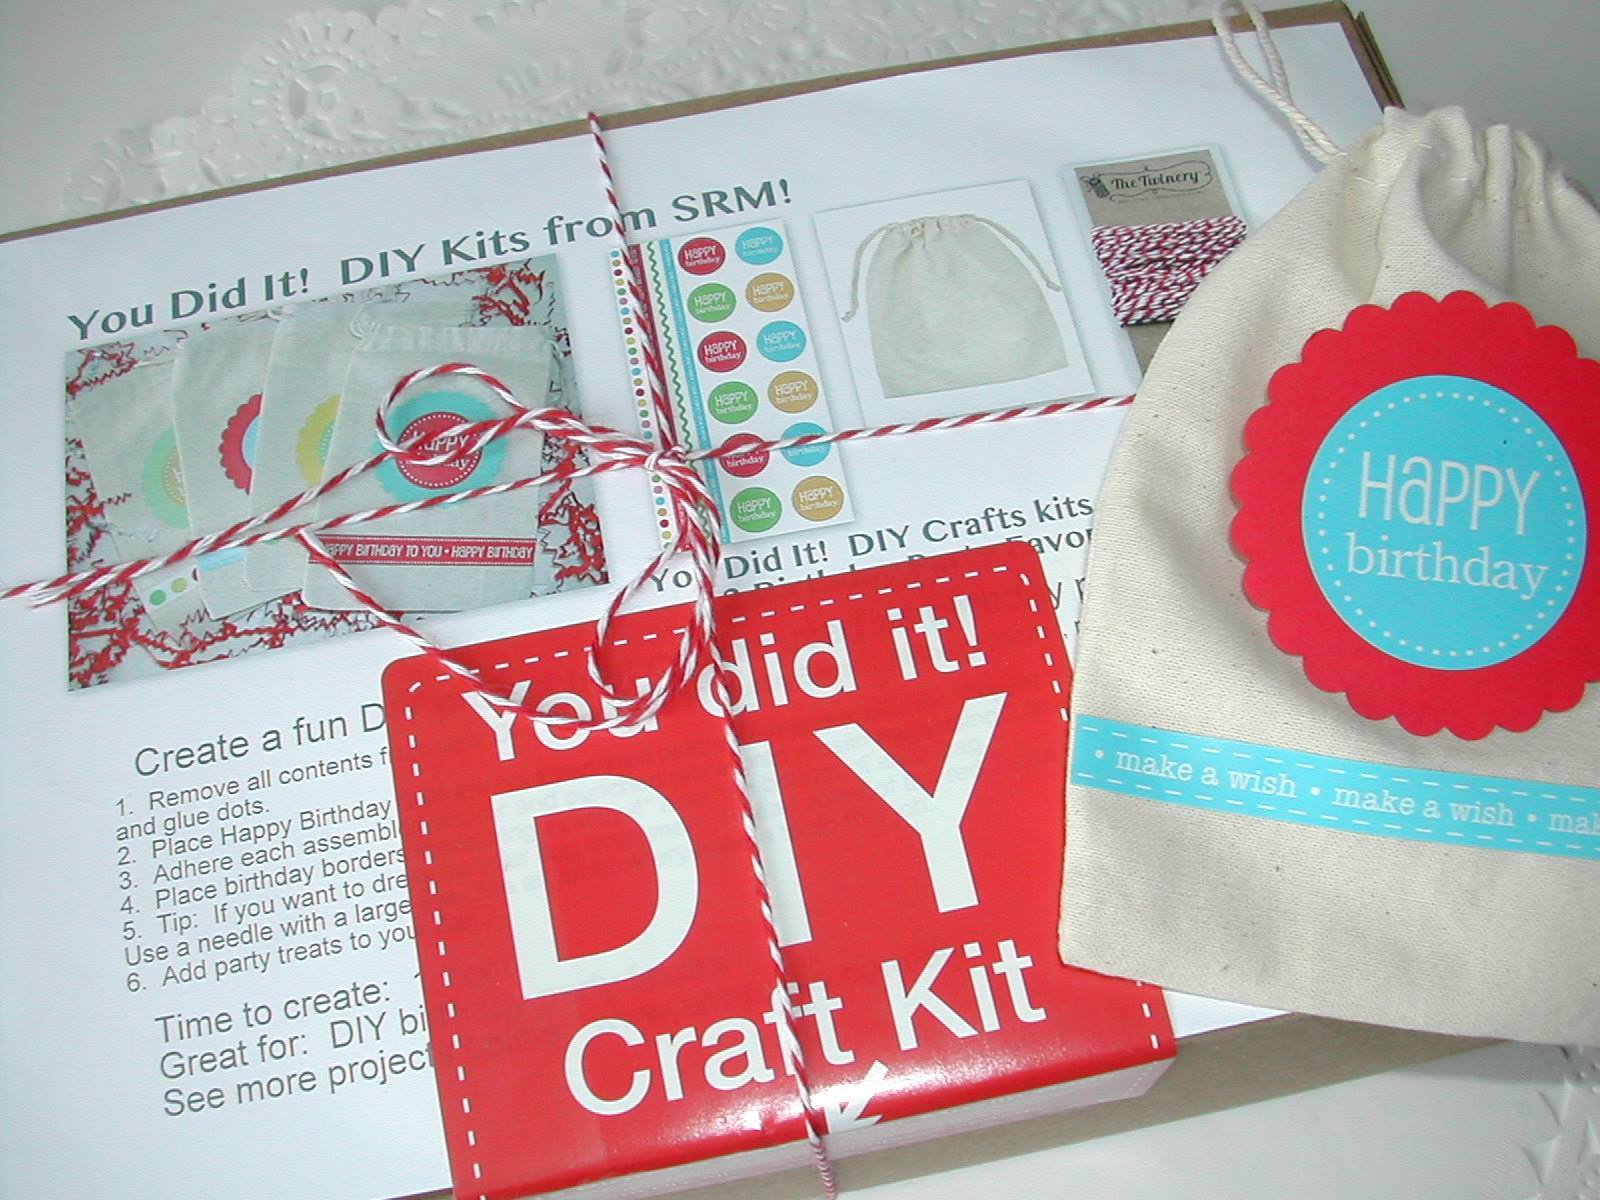 SRM Stickers Blog - DIY Birthday Kit by Shelly  #birthday #favors  #DIY #kit #muslin #bags  #stickers